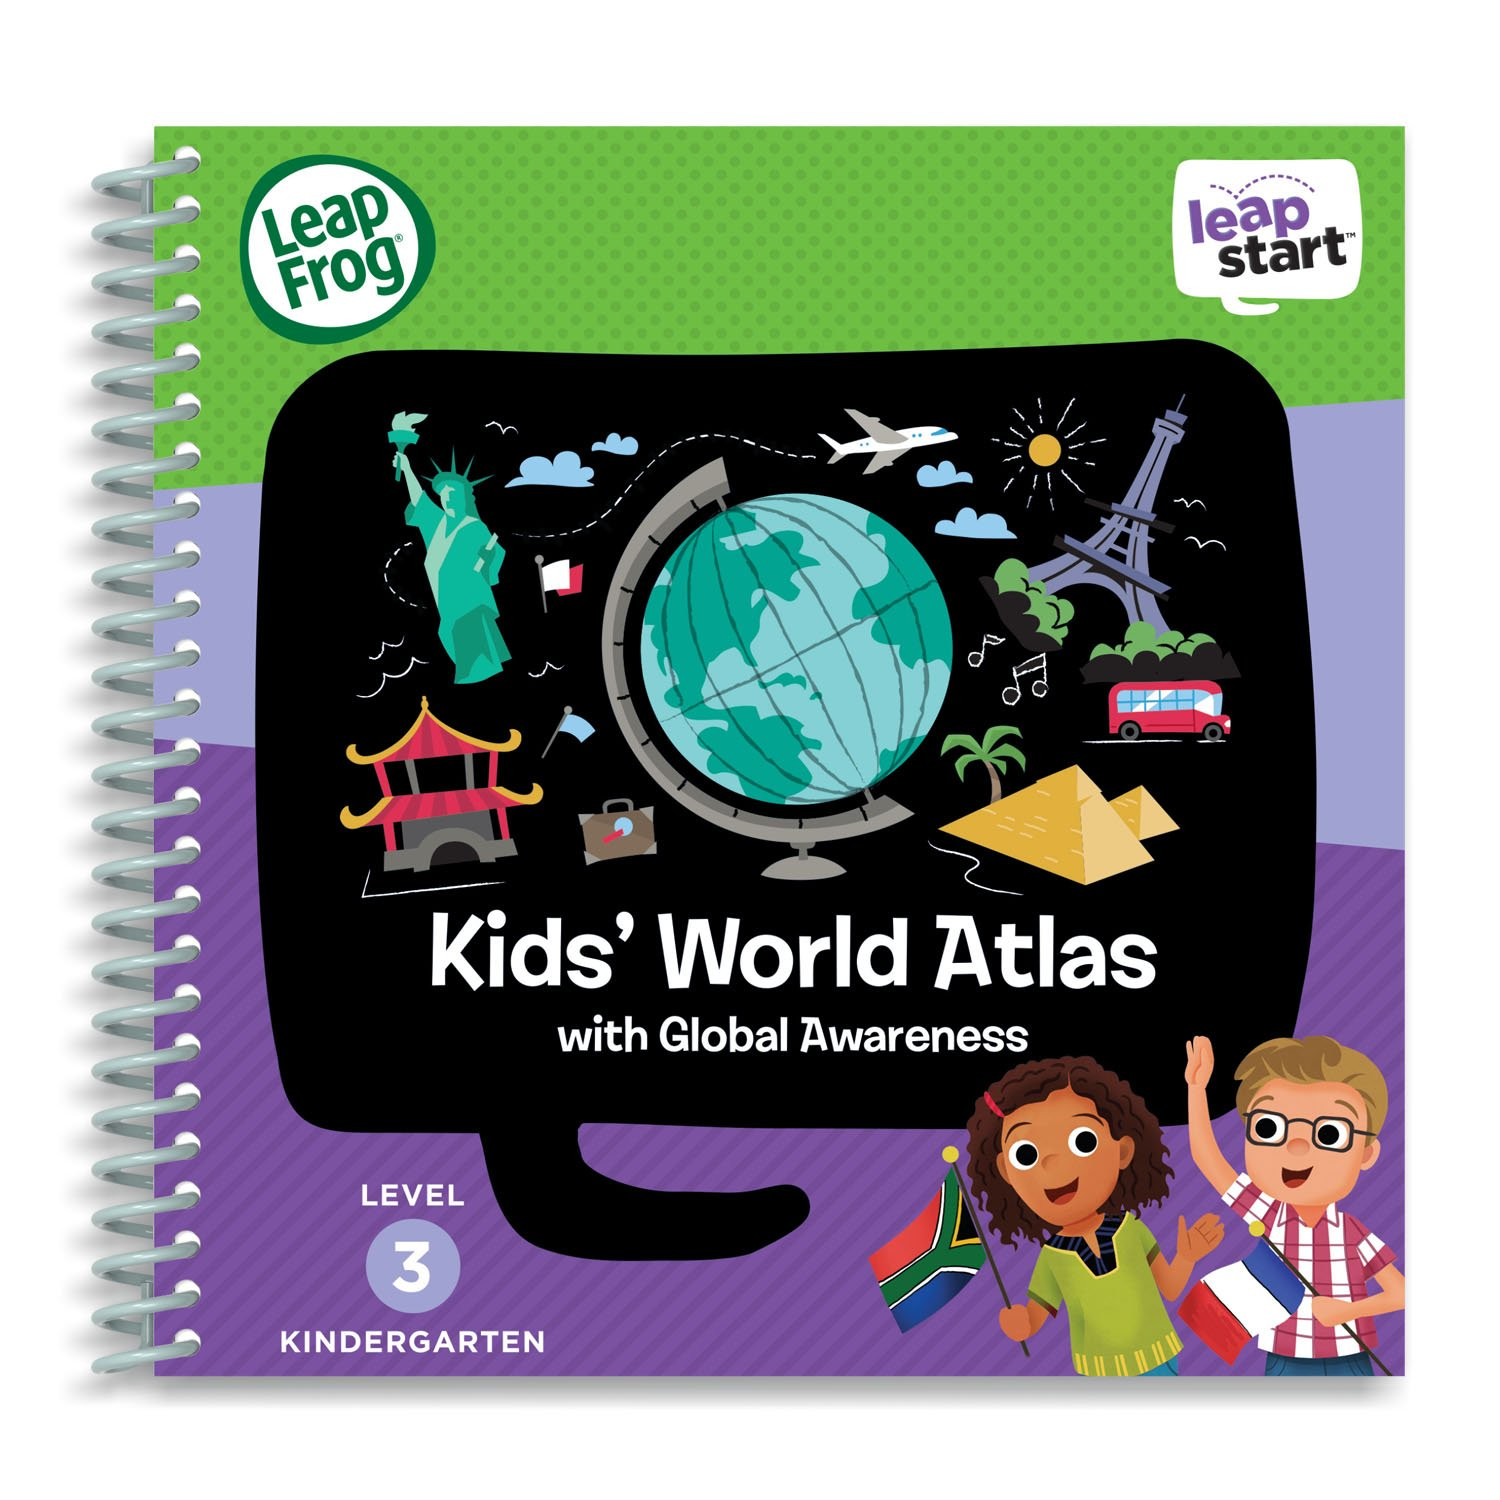 LeapFrog LeapStart Level 3 Kindergarten Activity Book Bundle with Kids' World Atlas, Amazing Animals by LeapFrog (Image #2)